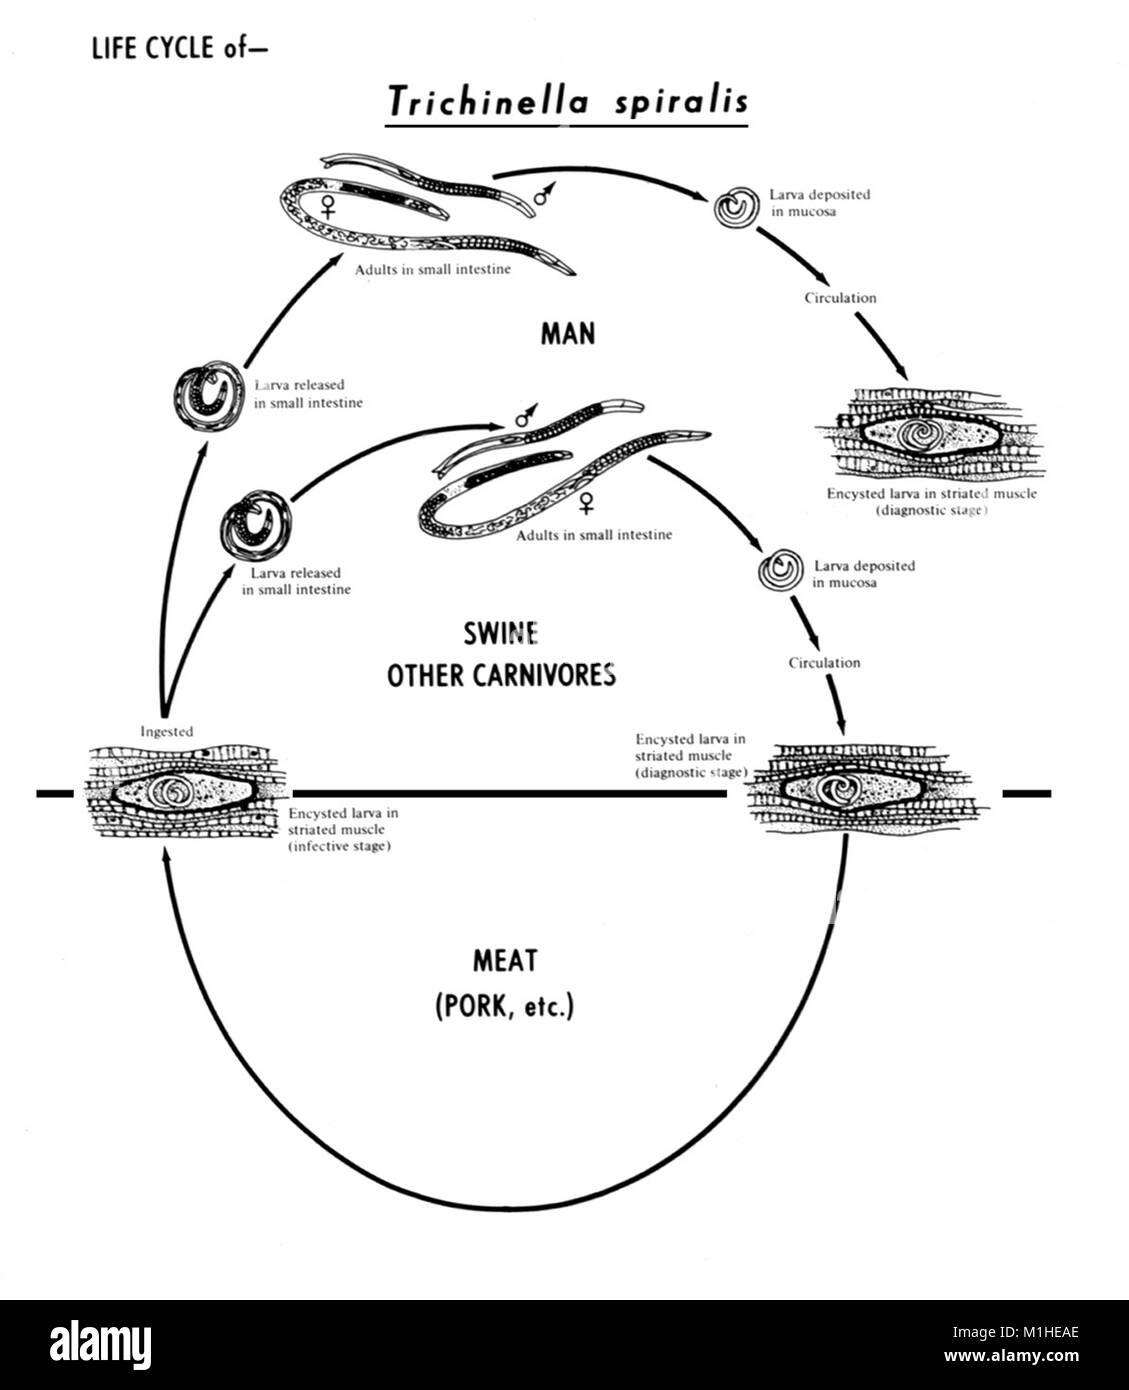 Nematoda black and white stock photos images alamy nematode trichinella spiralis various stages in the life cycle illustrated 1982 image pooptronica Gallery